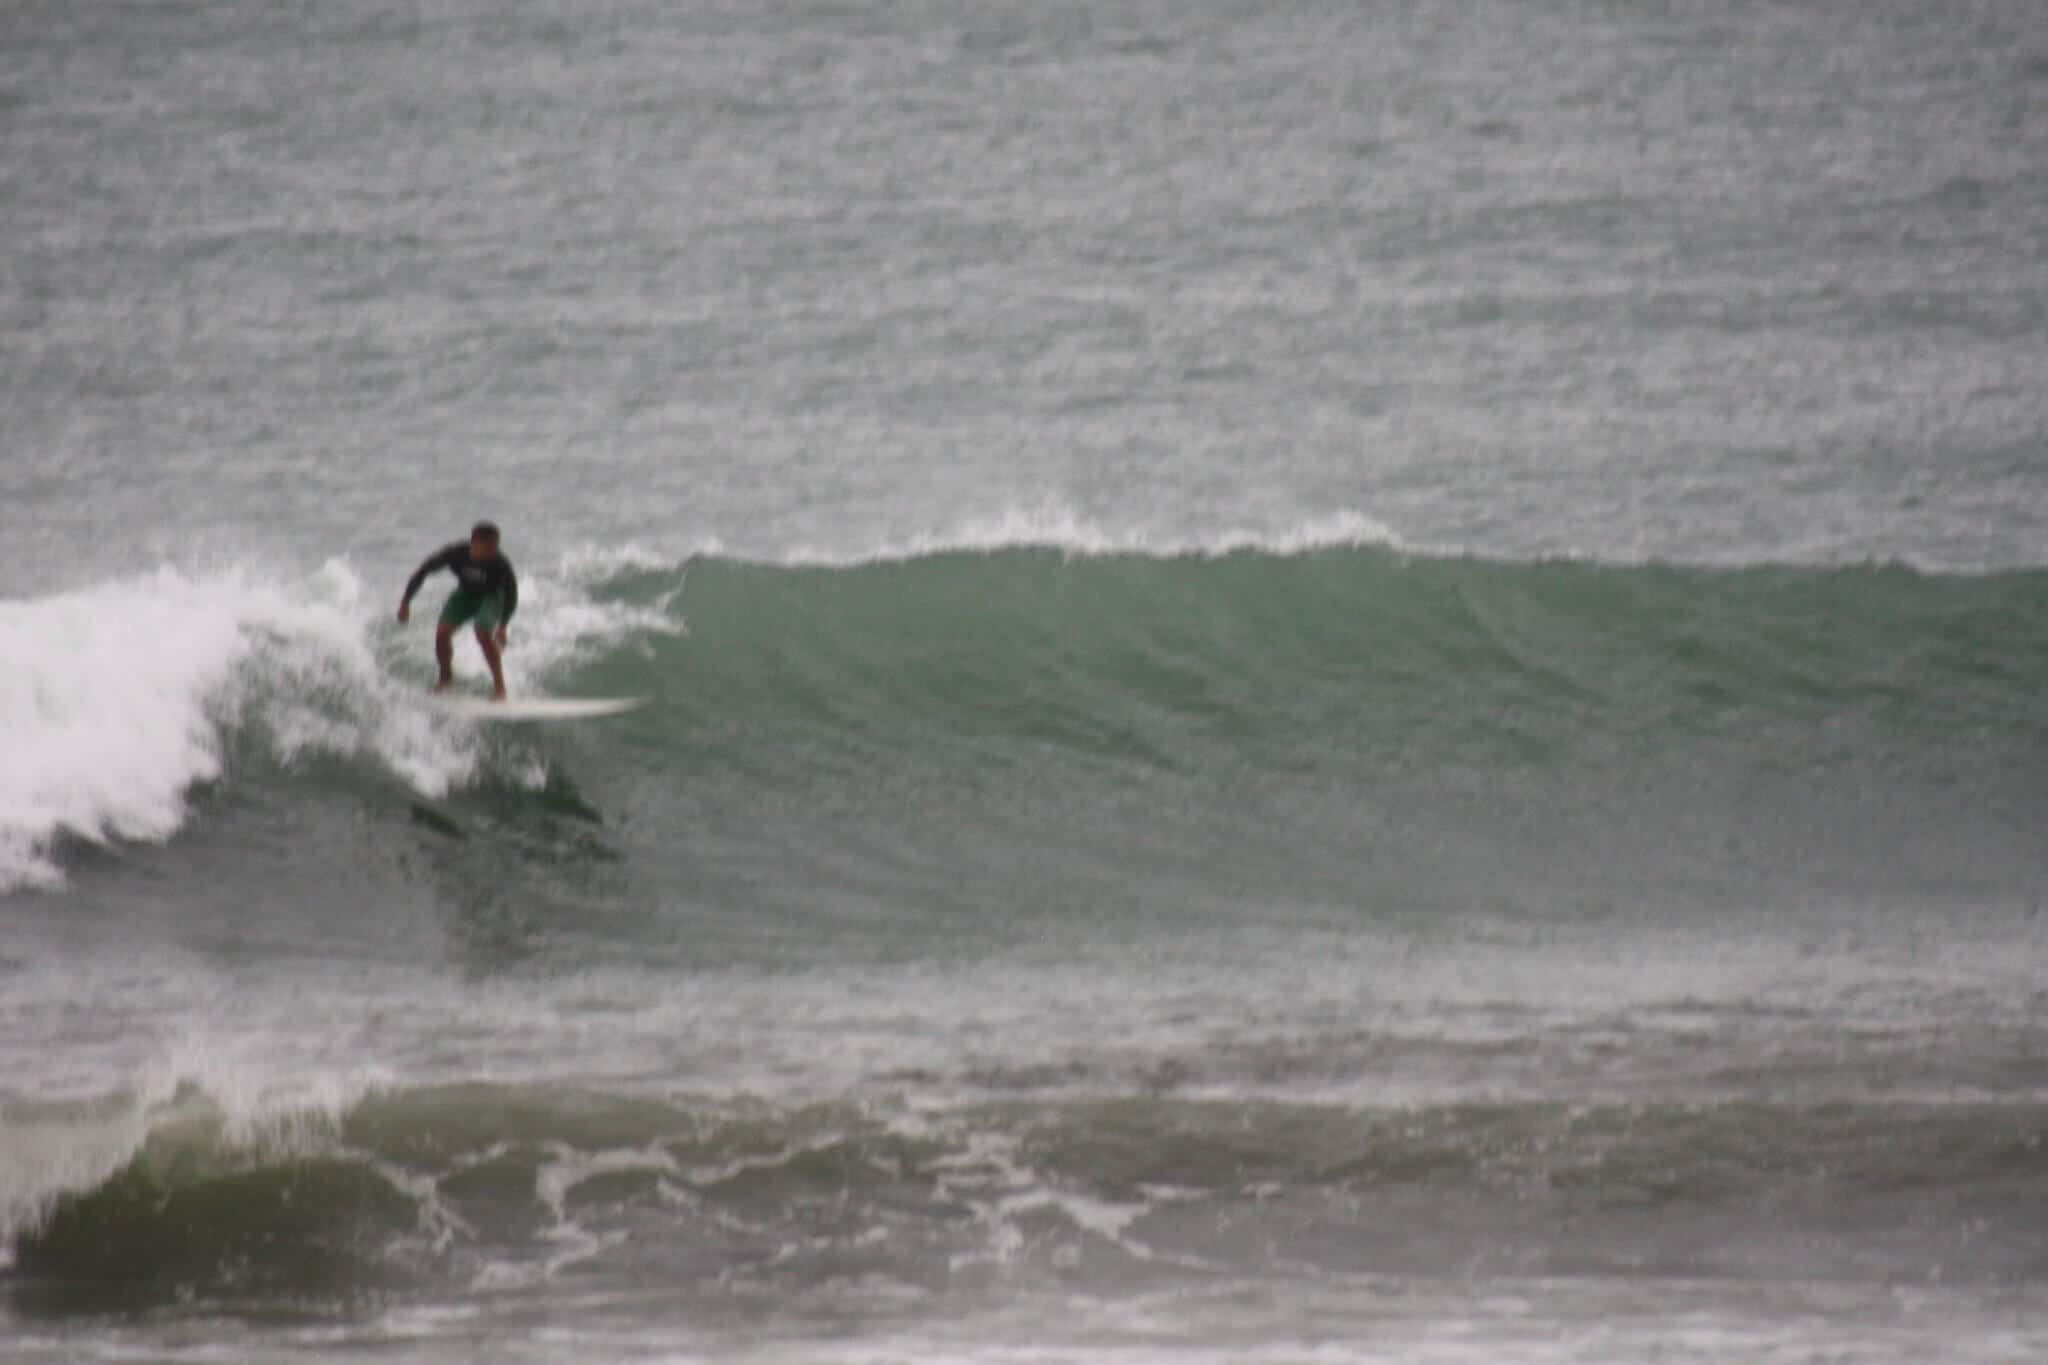 photo of the surfing activity in Raglan